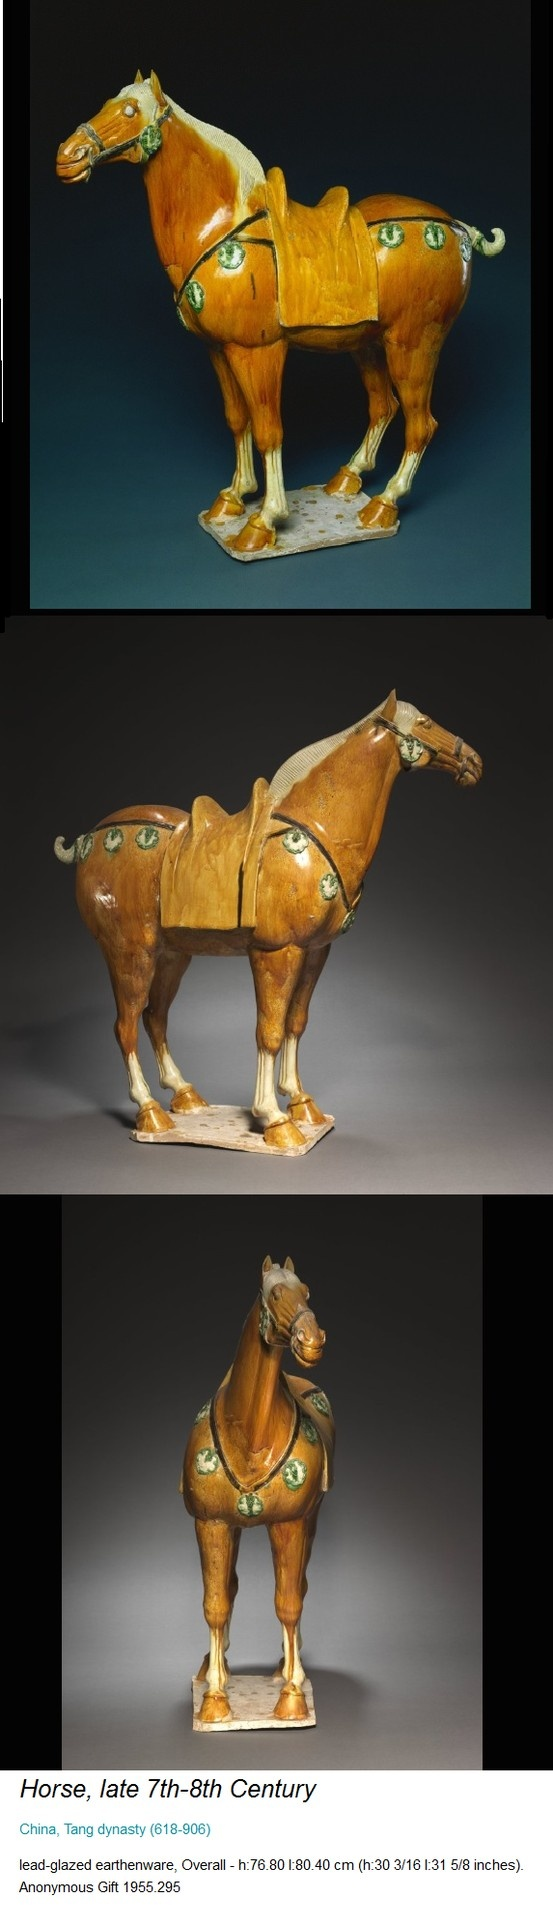 From the Cleveland Museum of Art - Tang Dynasty Horse